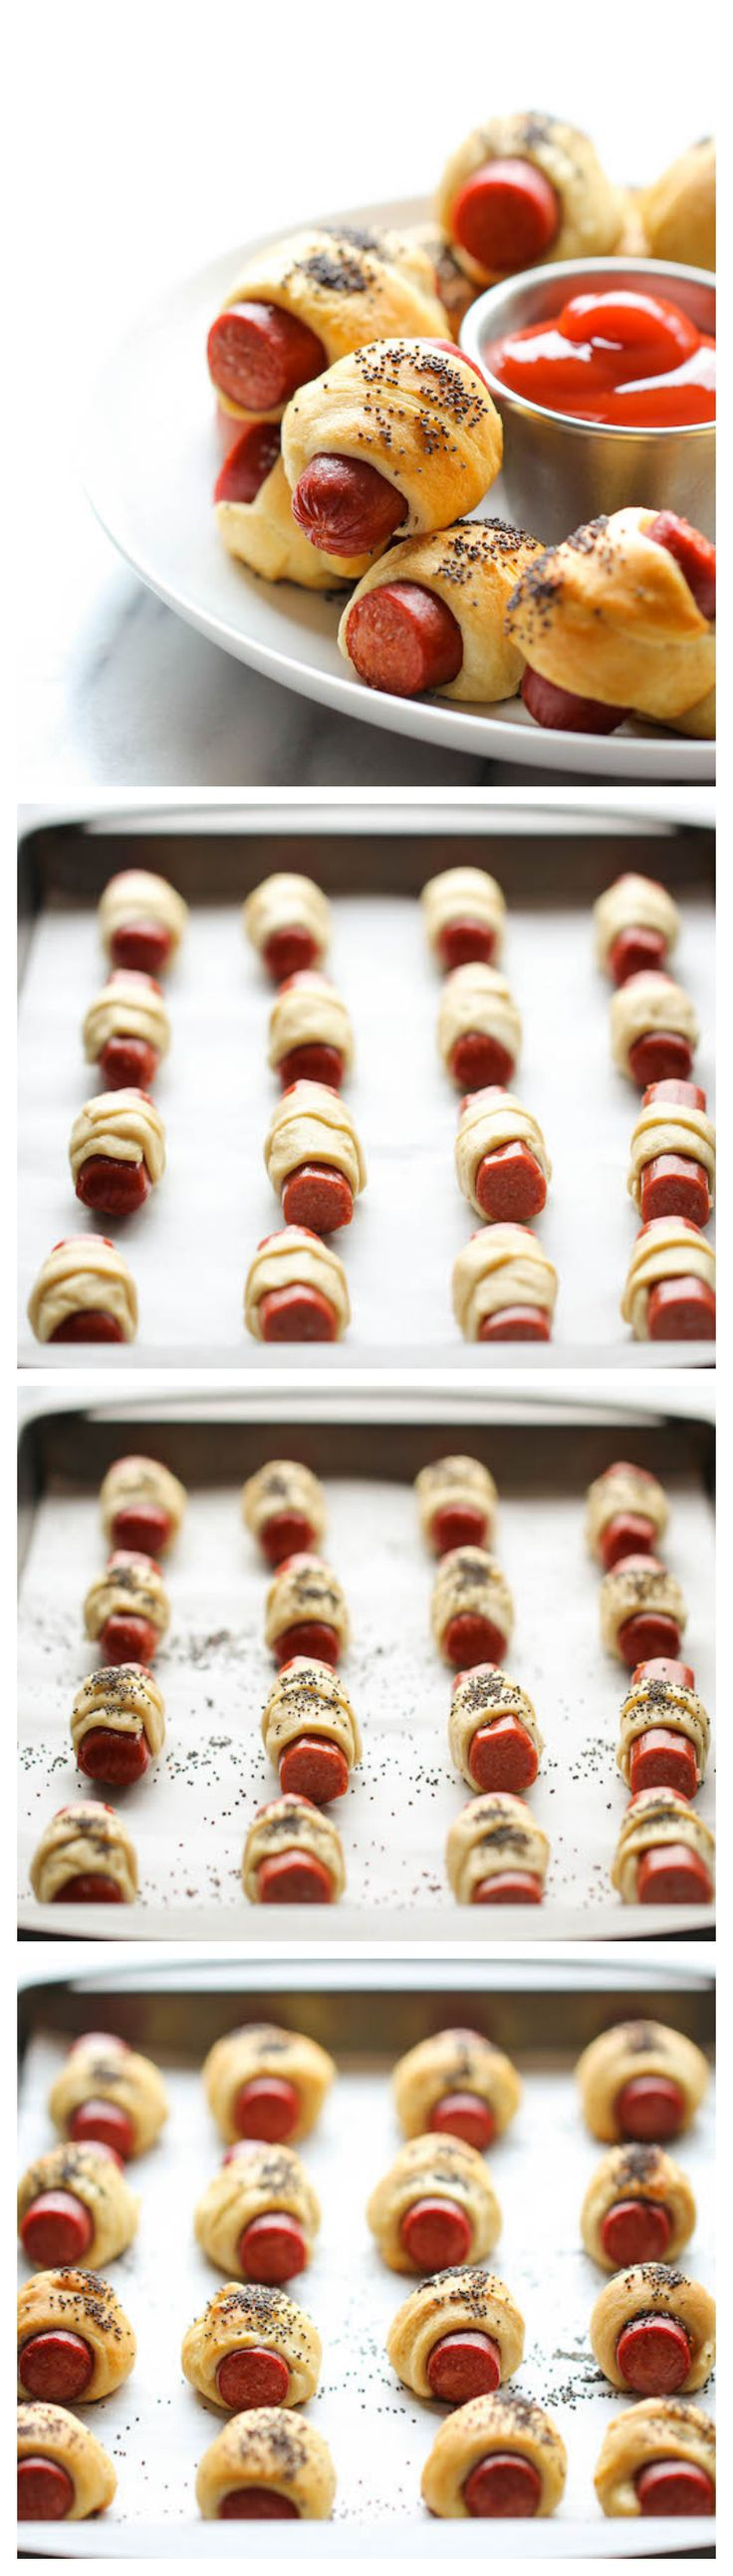 Classic Pigs in a Blanket - The easiest two ingredient pigs in a blanket. Perfect for game day or as an after-school snack!